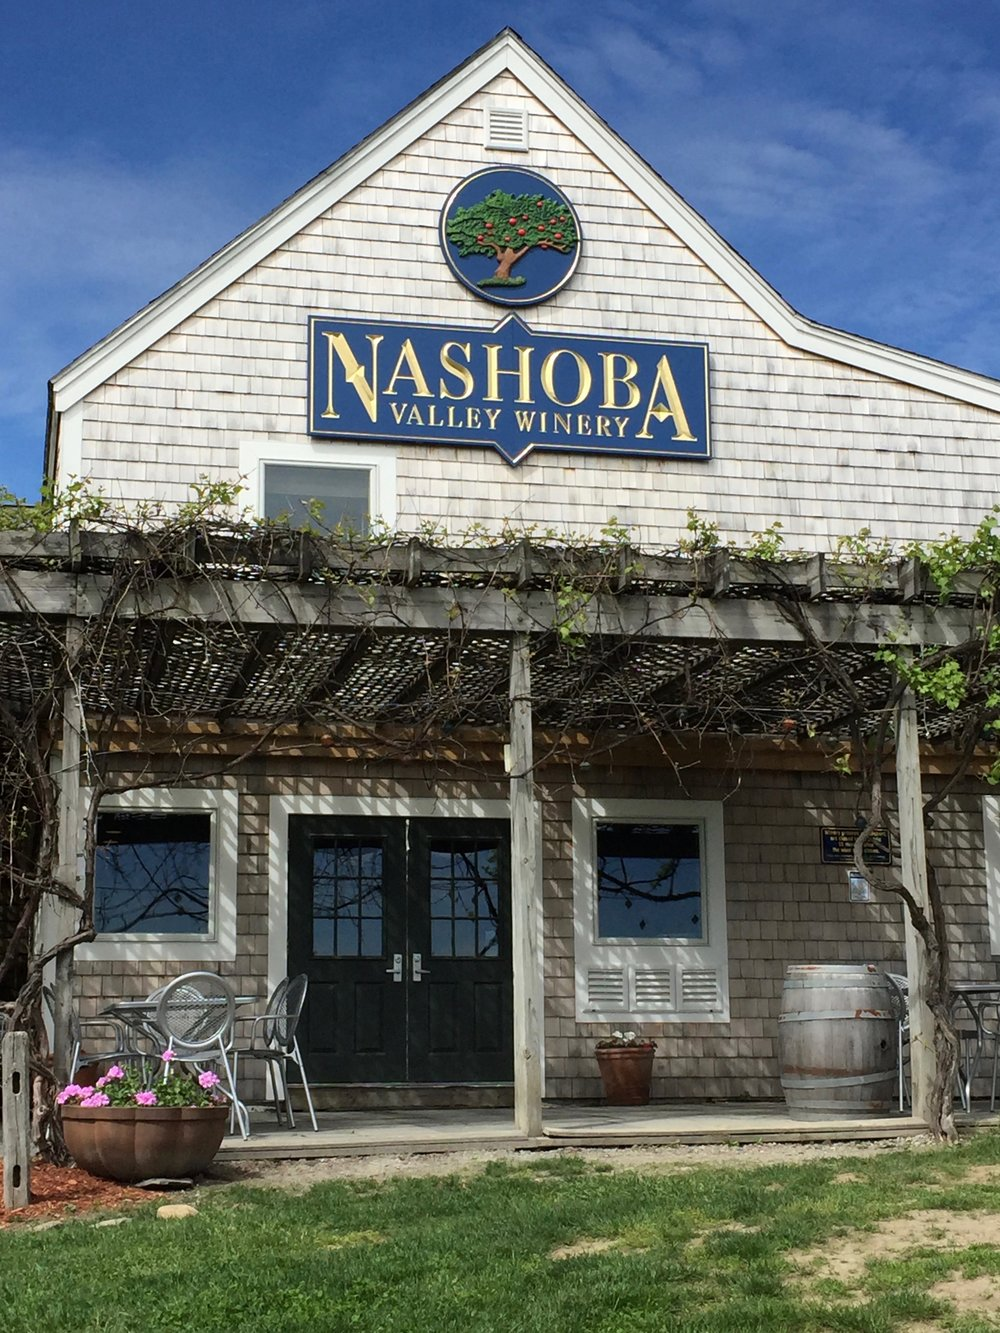 Nashoba Valley Winery.jpg